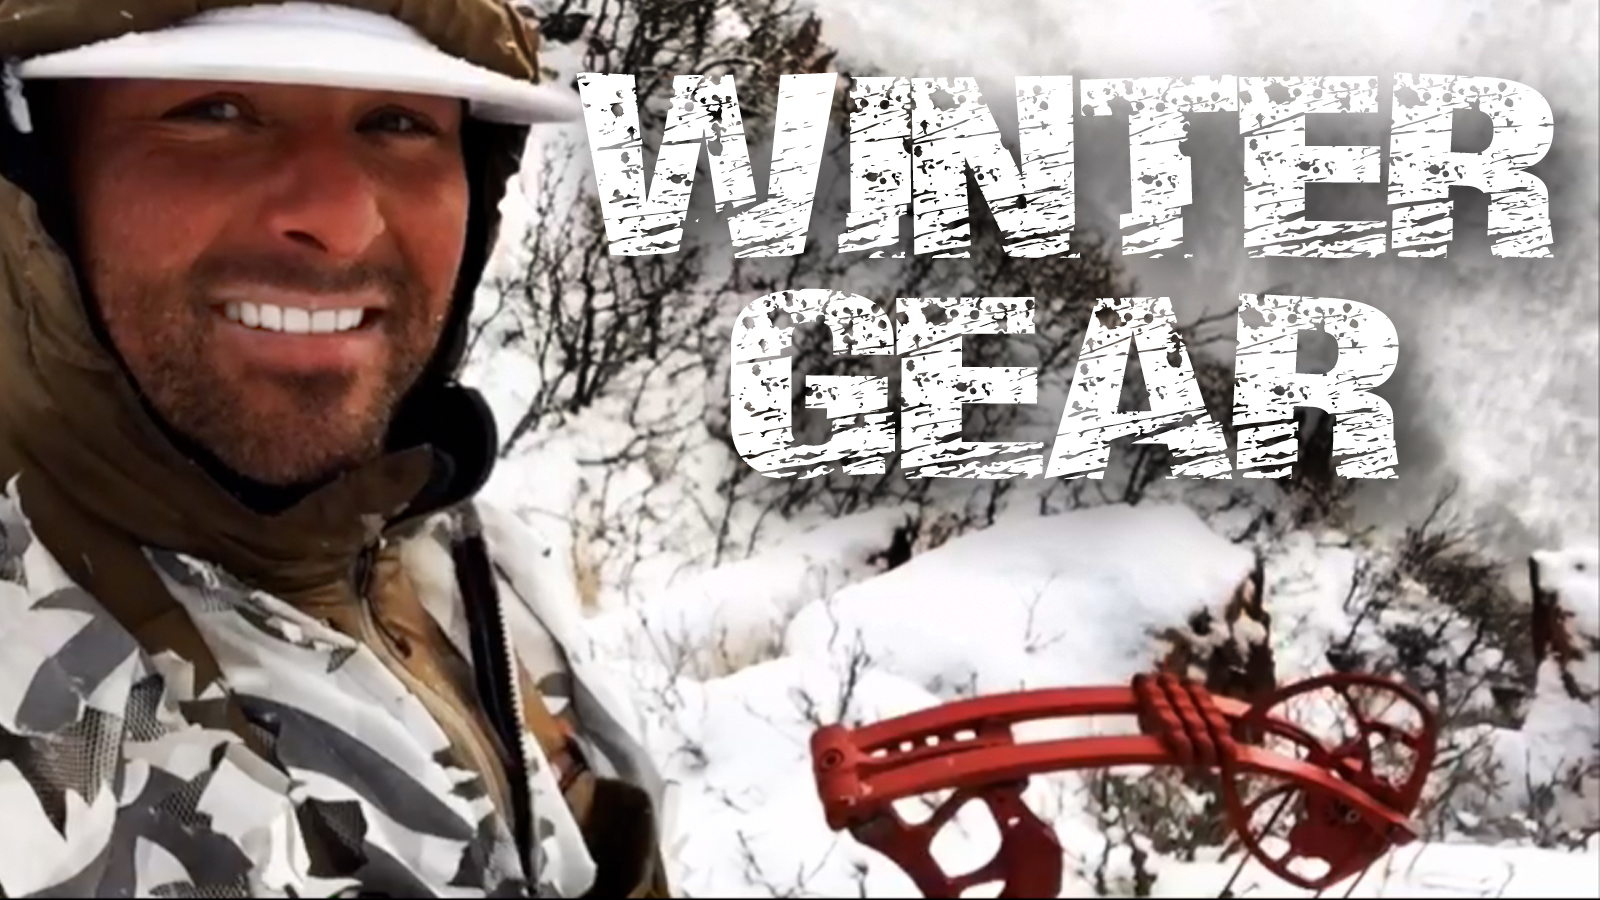 ZAC GRIFFITH WINTER BACKCOUNTRY GEAR